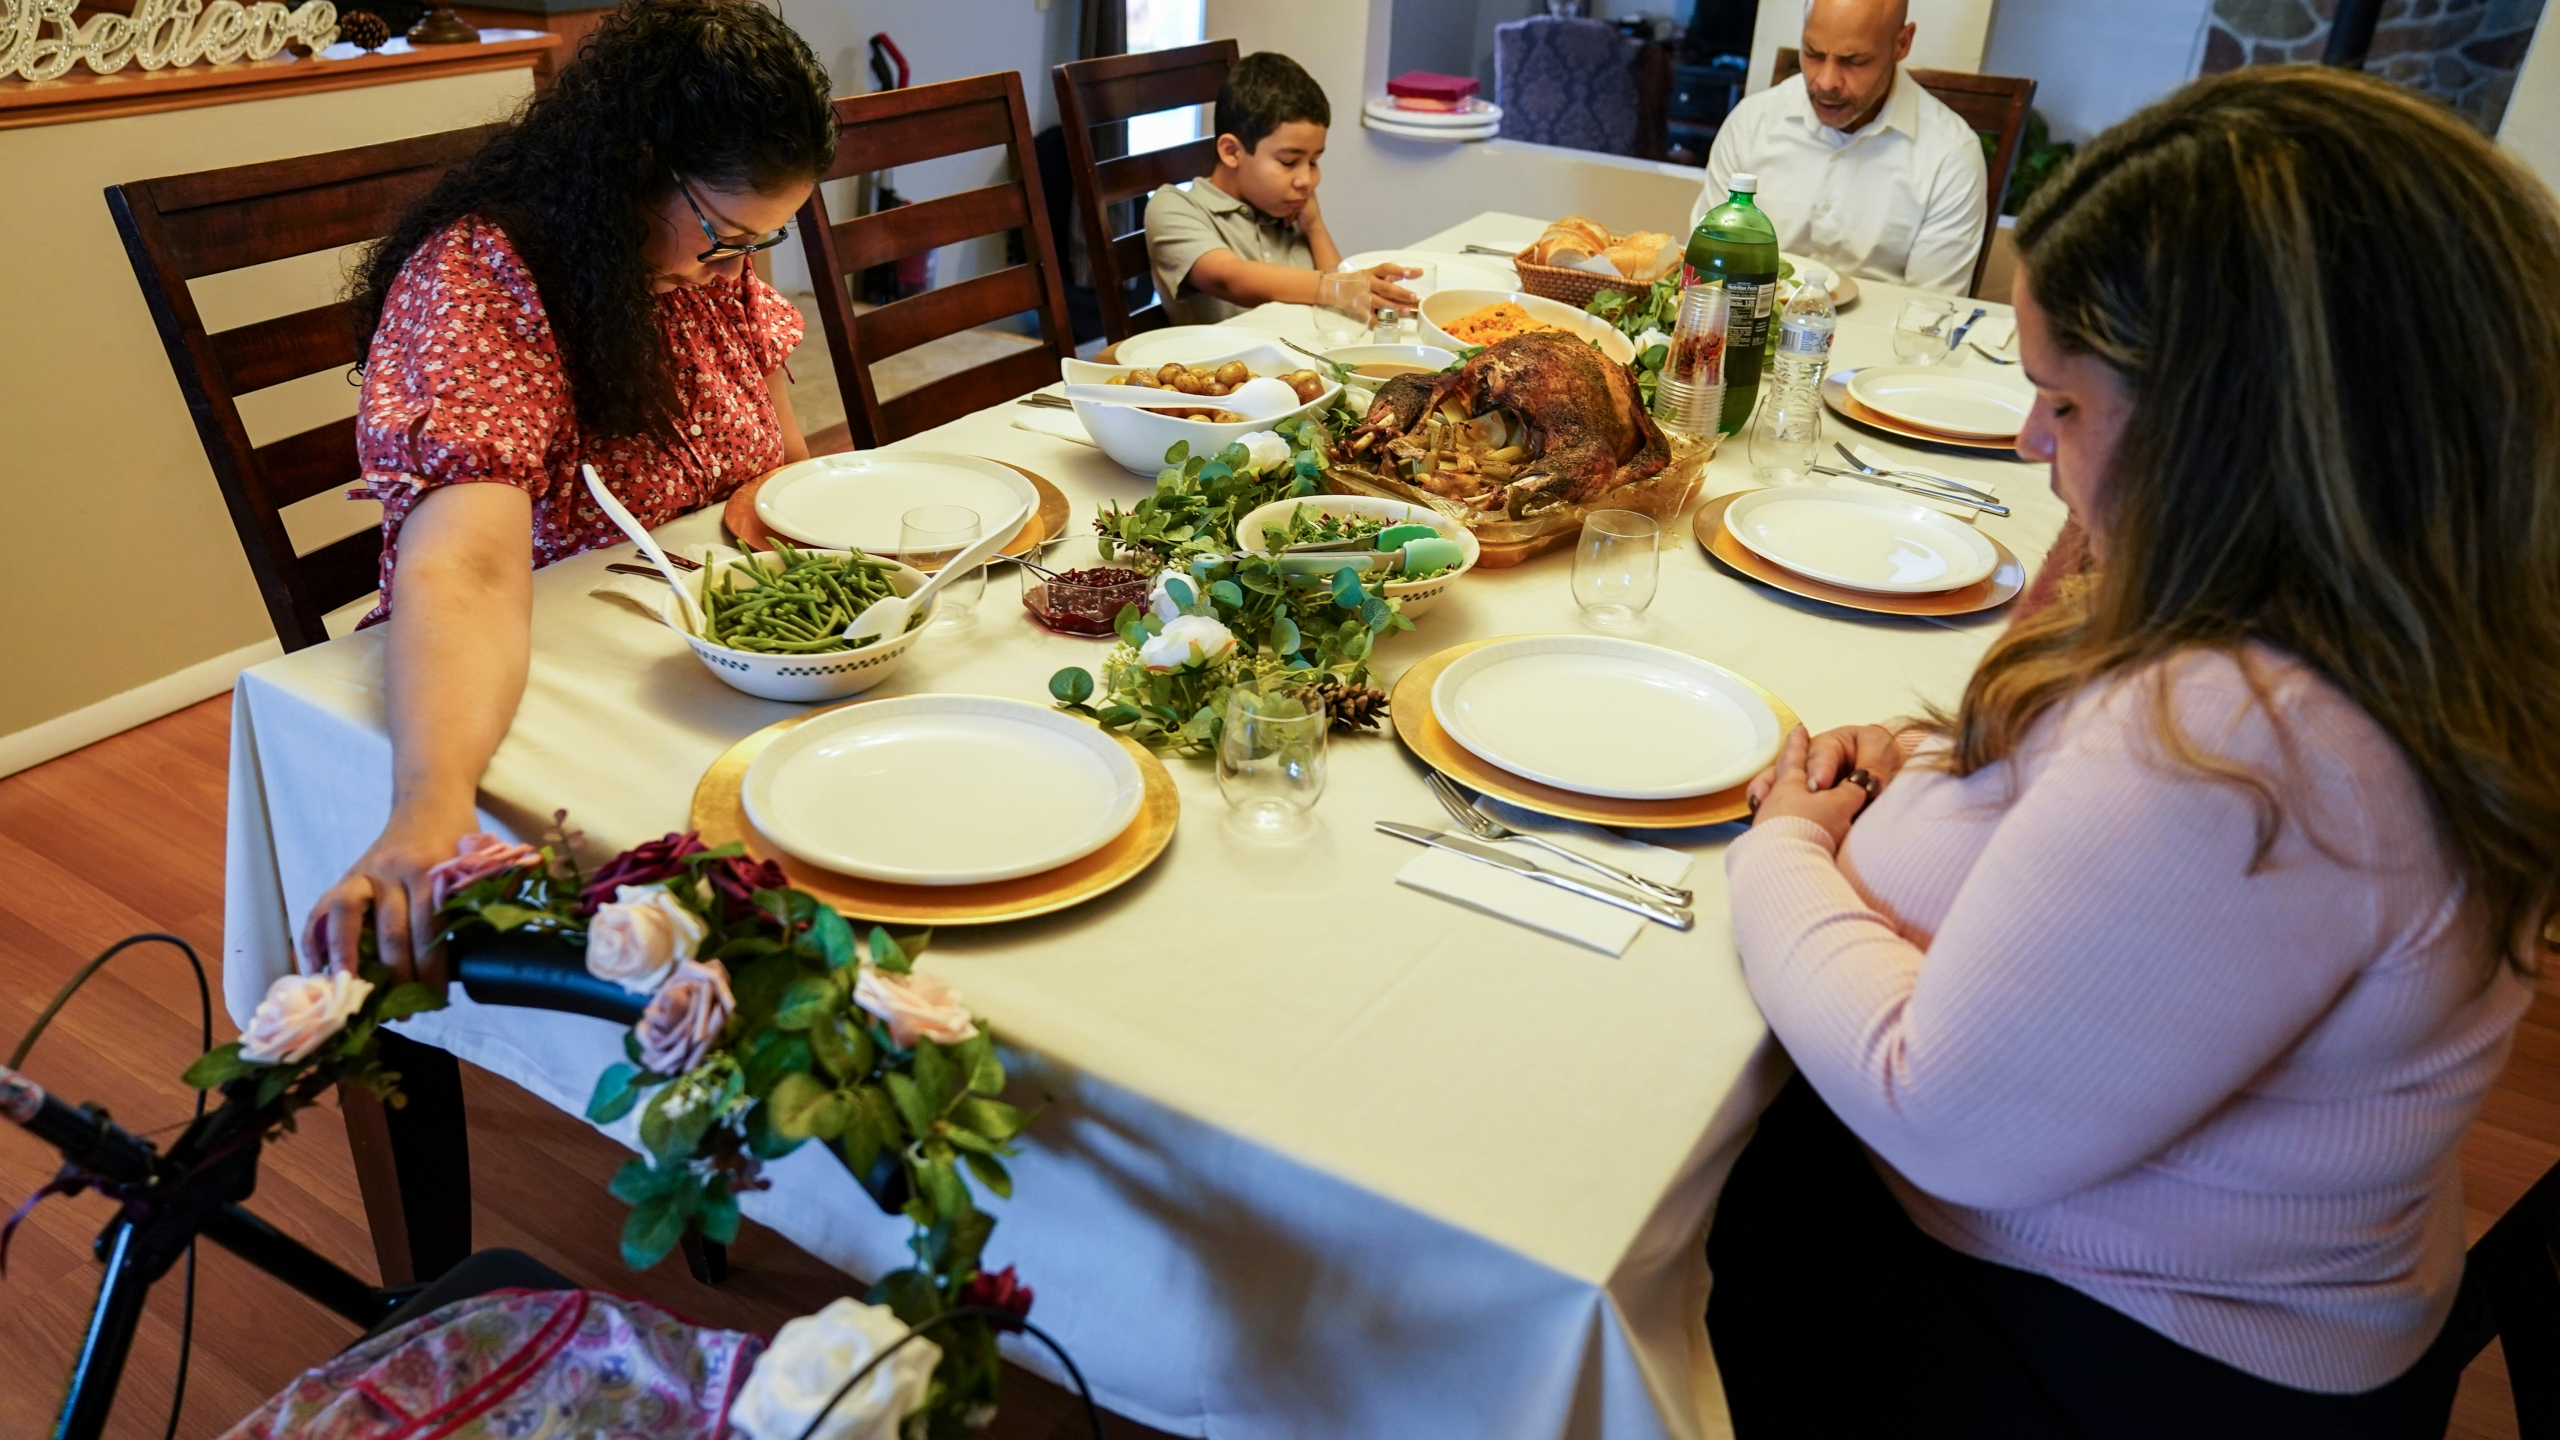 Vivian Zayas holds onto the walker once belonging to her recently deceased mother Ana Martinez while her family prays before Thanksgiving dinner on Nov. 26, 2020, in Deer Park, N.Y. Ana Martinez died at 78 on April 1 while recovering at a nursing home from a knee replacement. (John Minchillo / Associated Press)